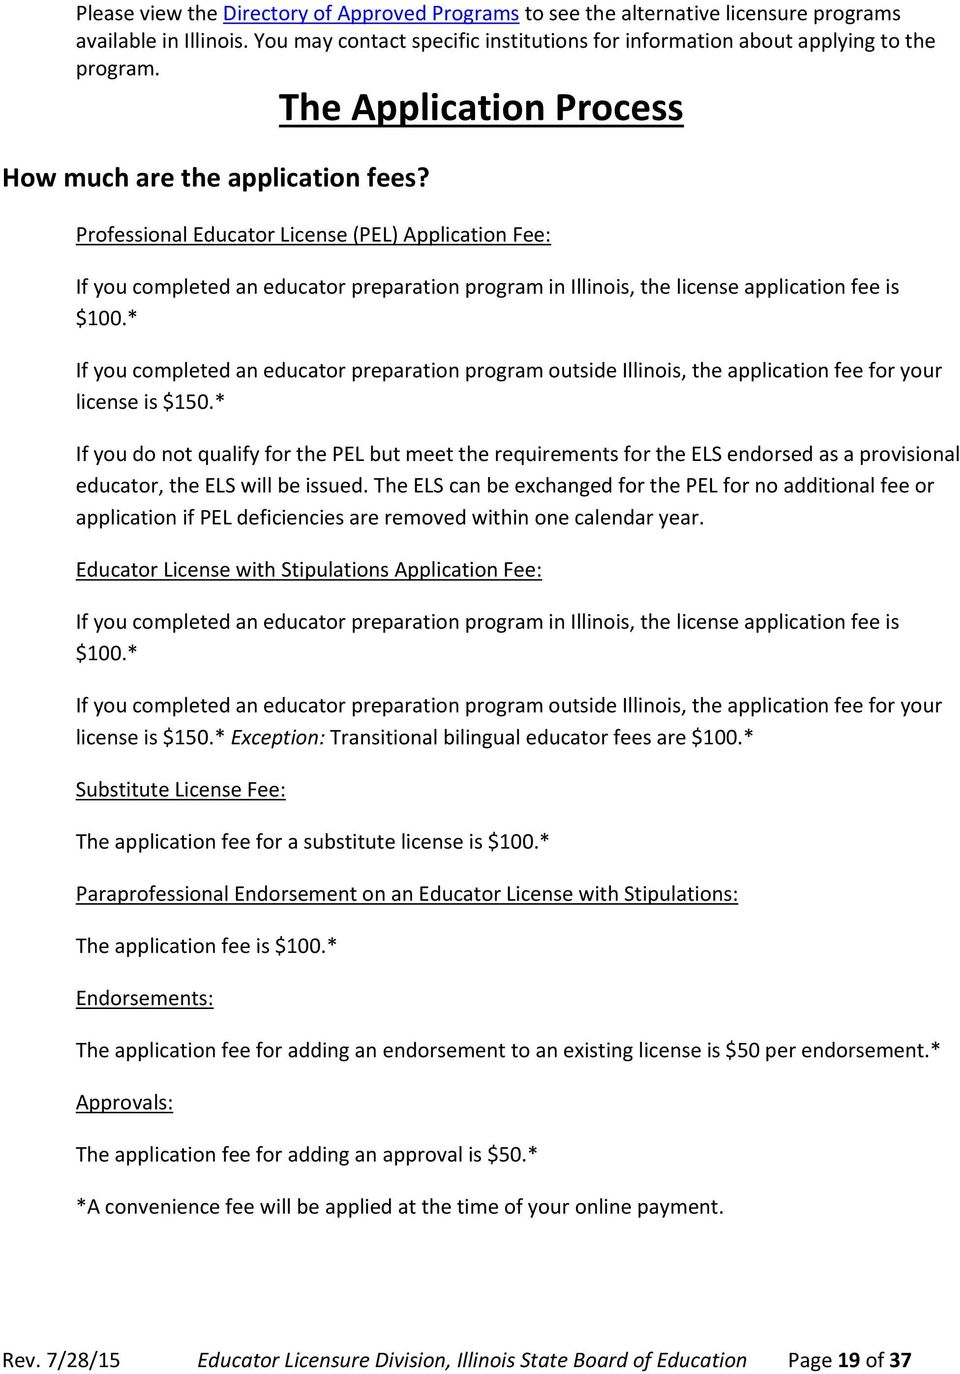 Professional Educator License (PEL) Application Fee: If you completed an educator preparation program in Illinois, the license application fee is $100.